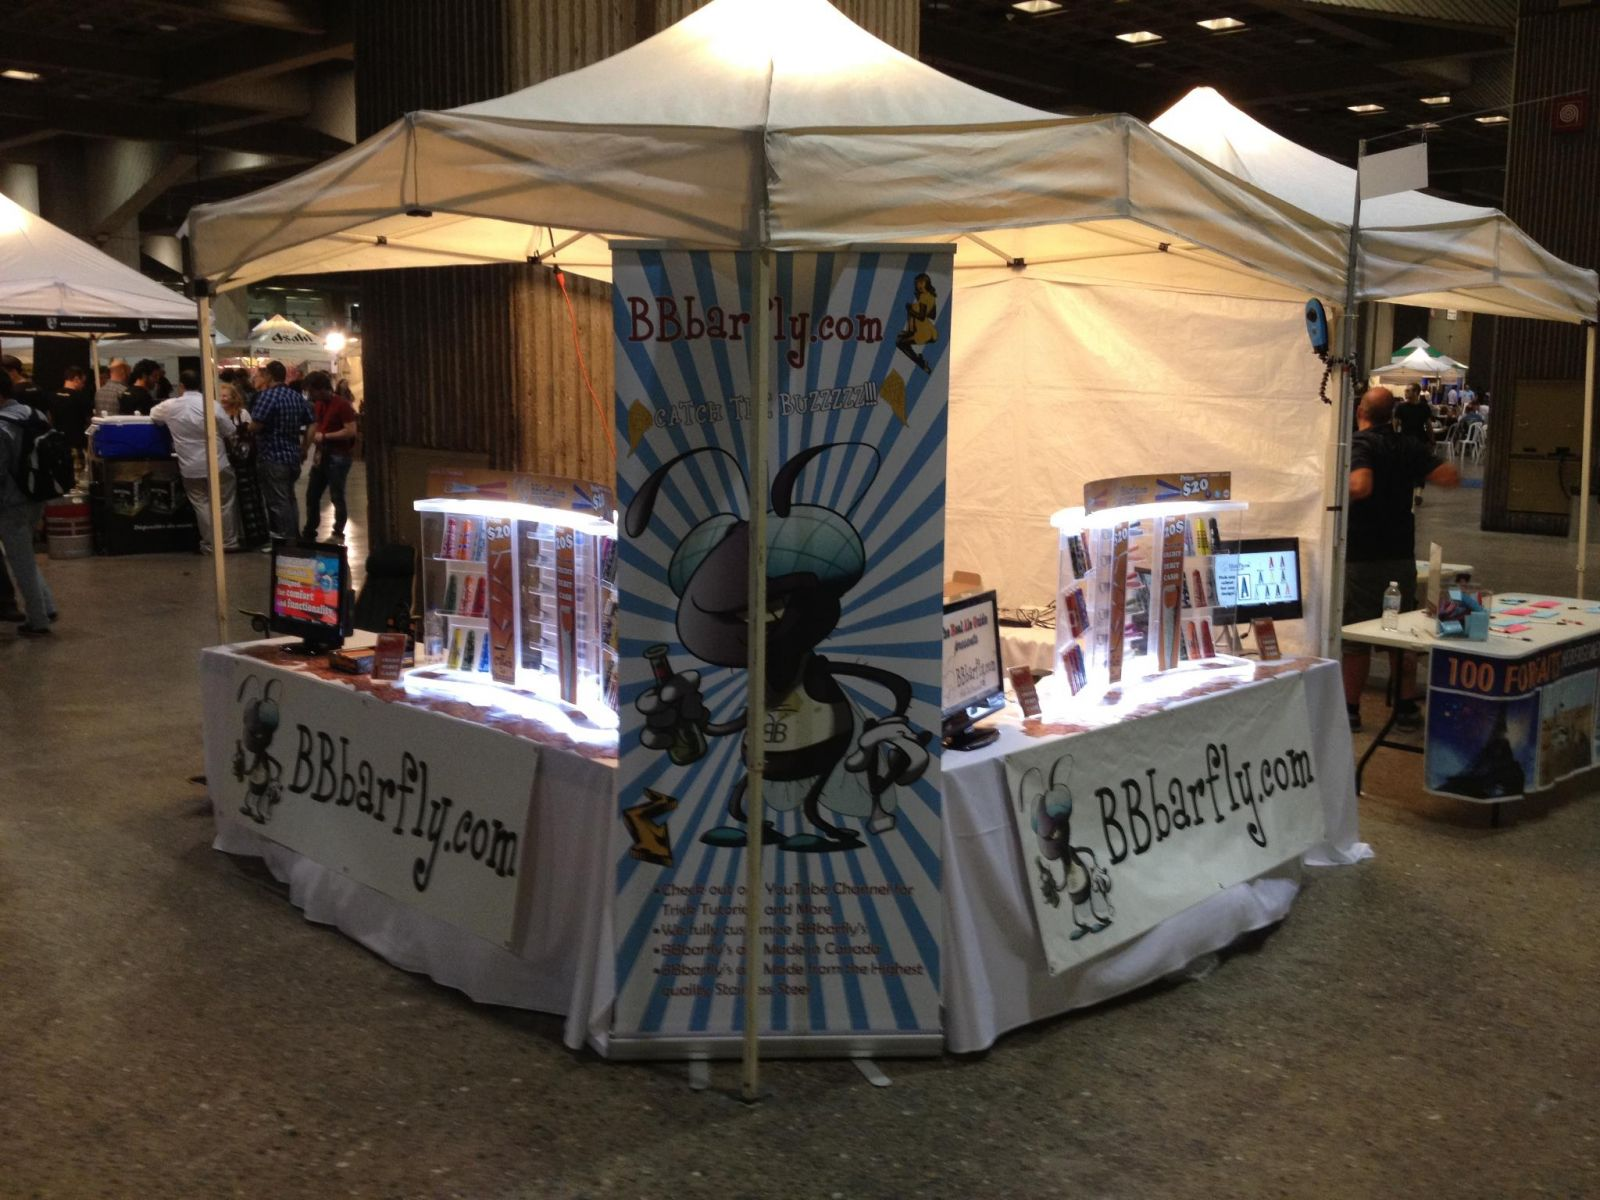 BBbarfly at Montreal Beer Festival